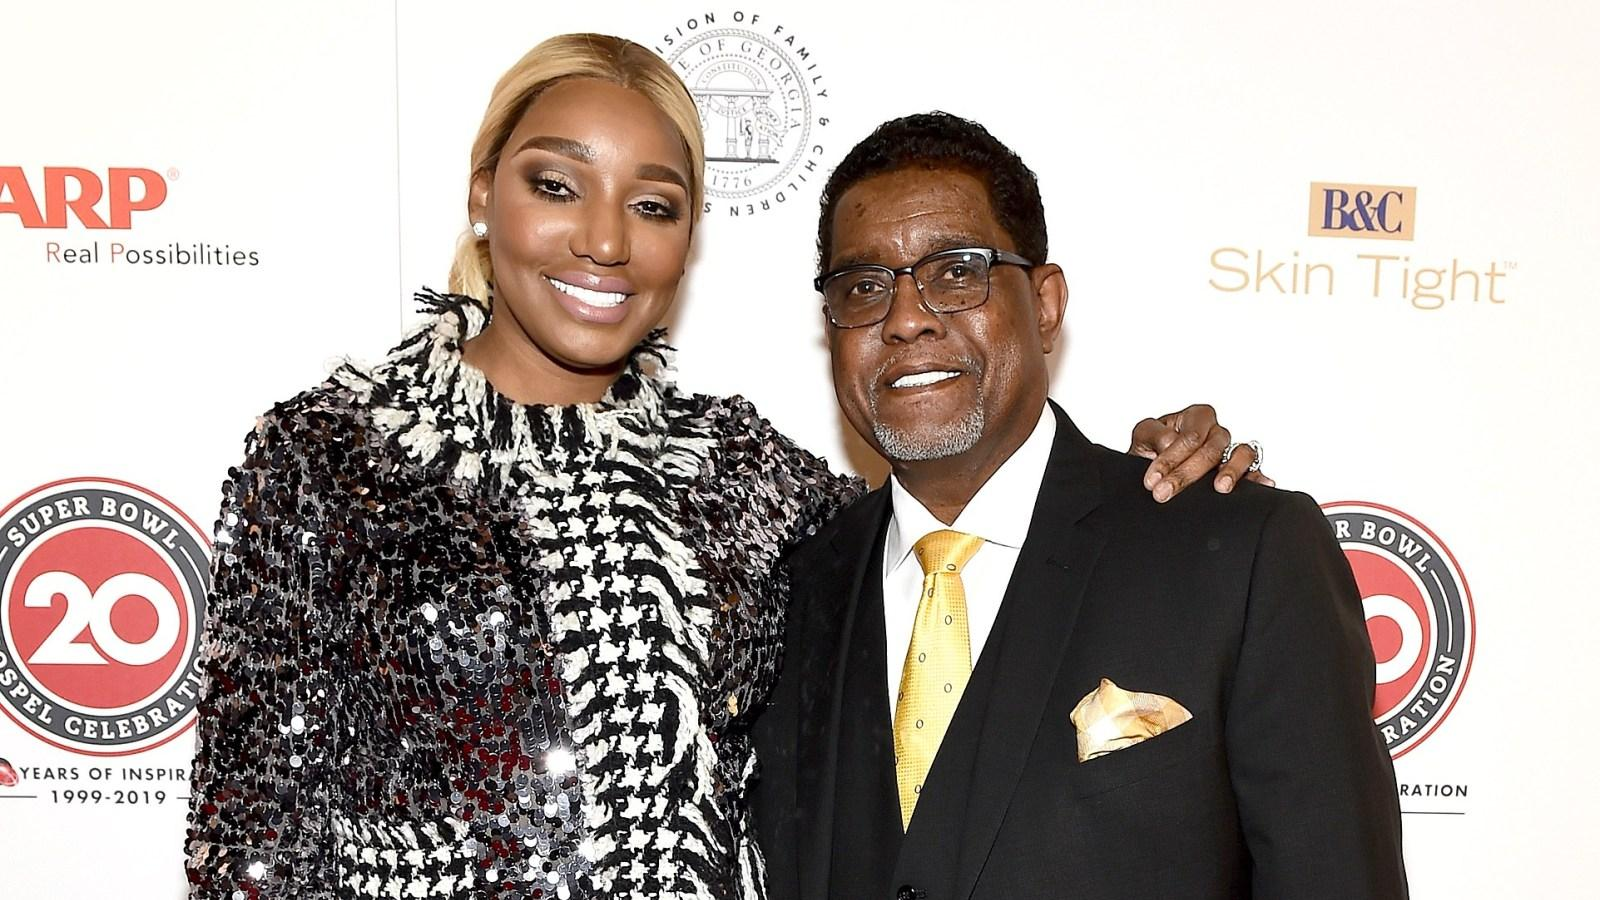 NeNe Leakes Sparks Divorce Rumors With A Recent Post - Fans Are Freaking Out